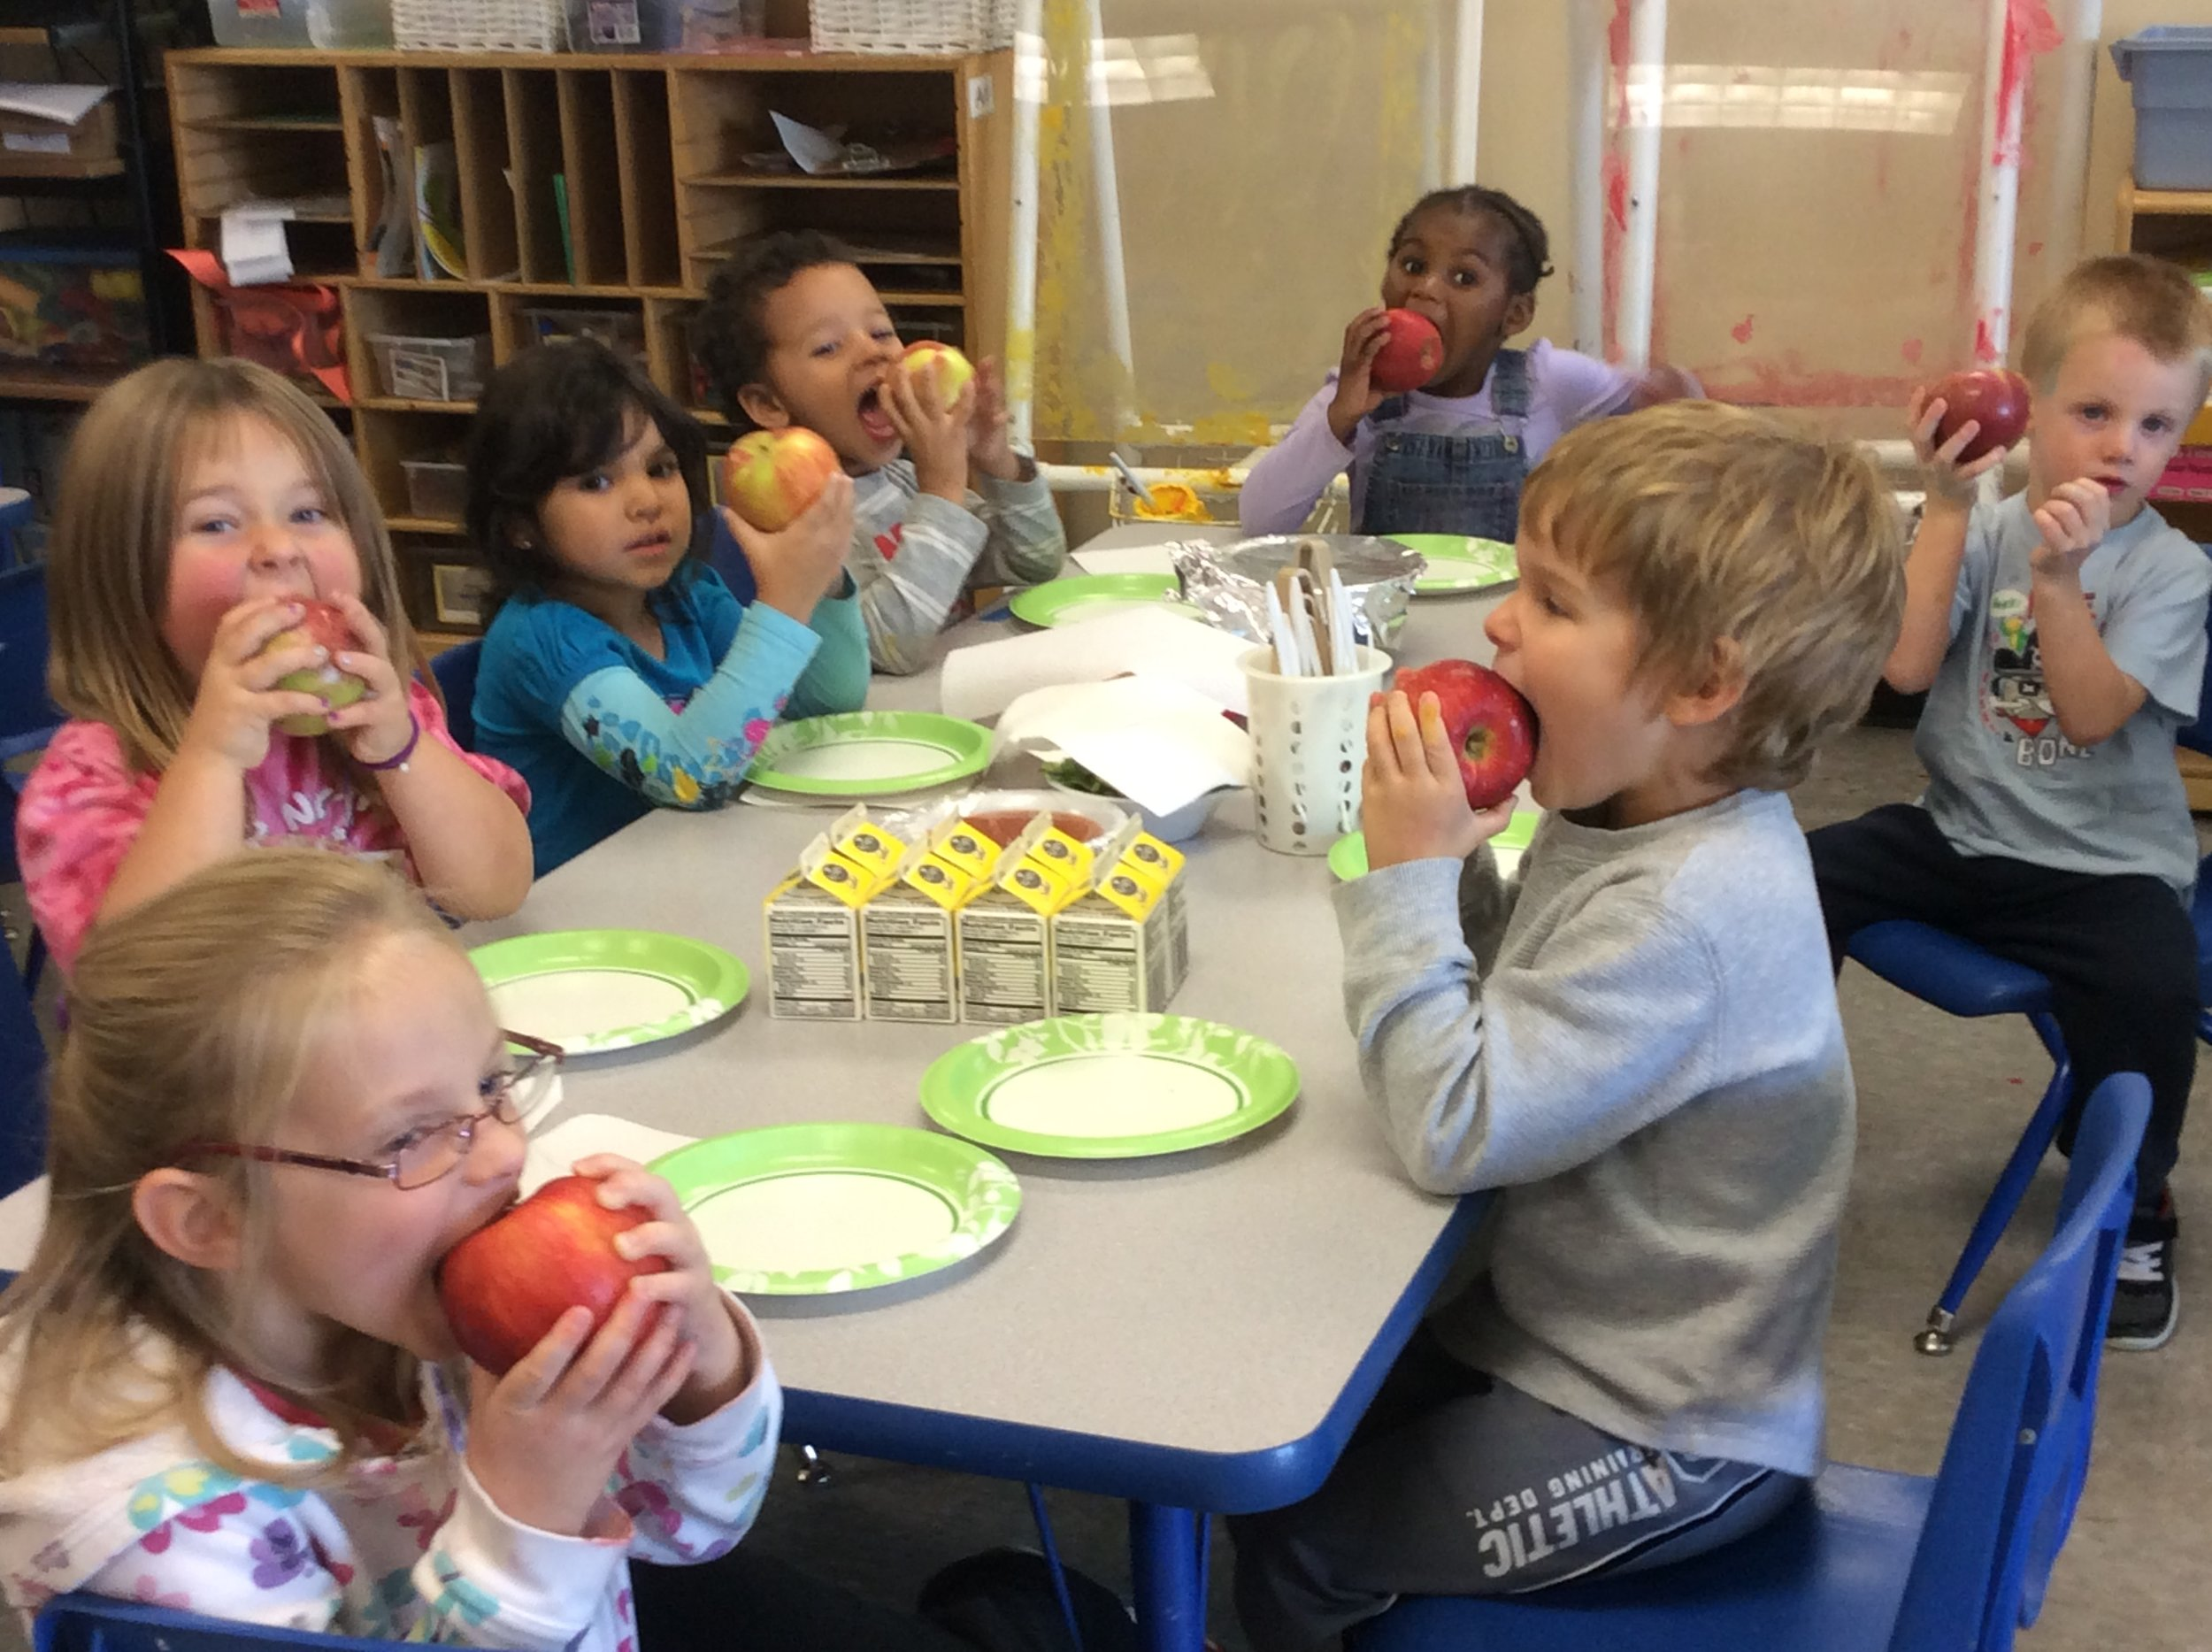 An early care program with local apples